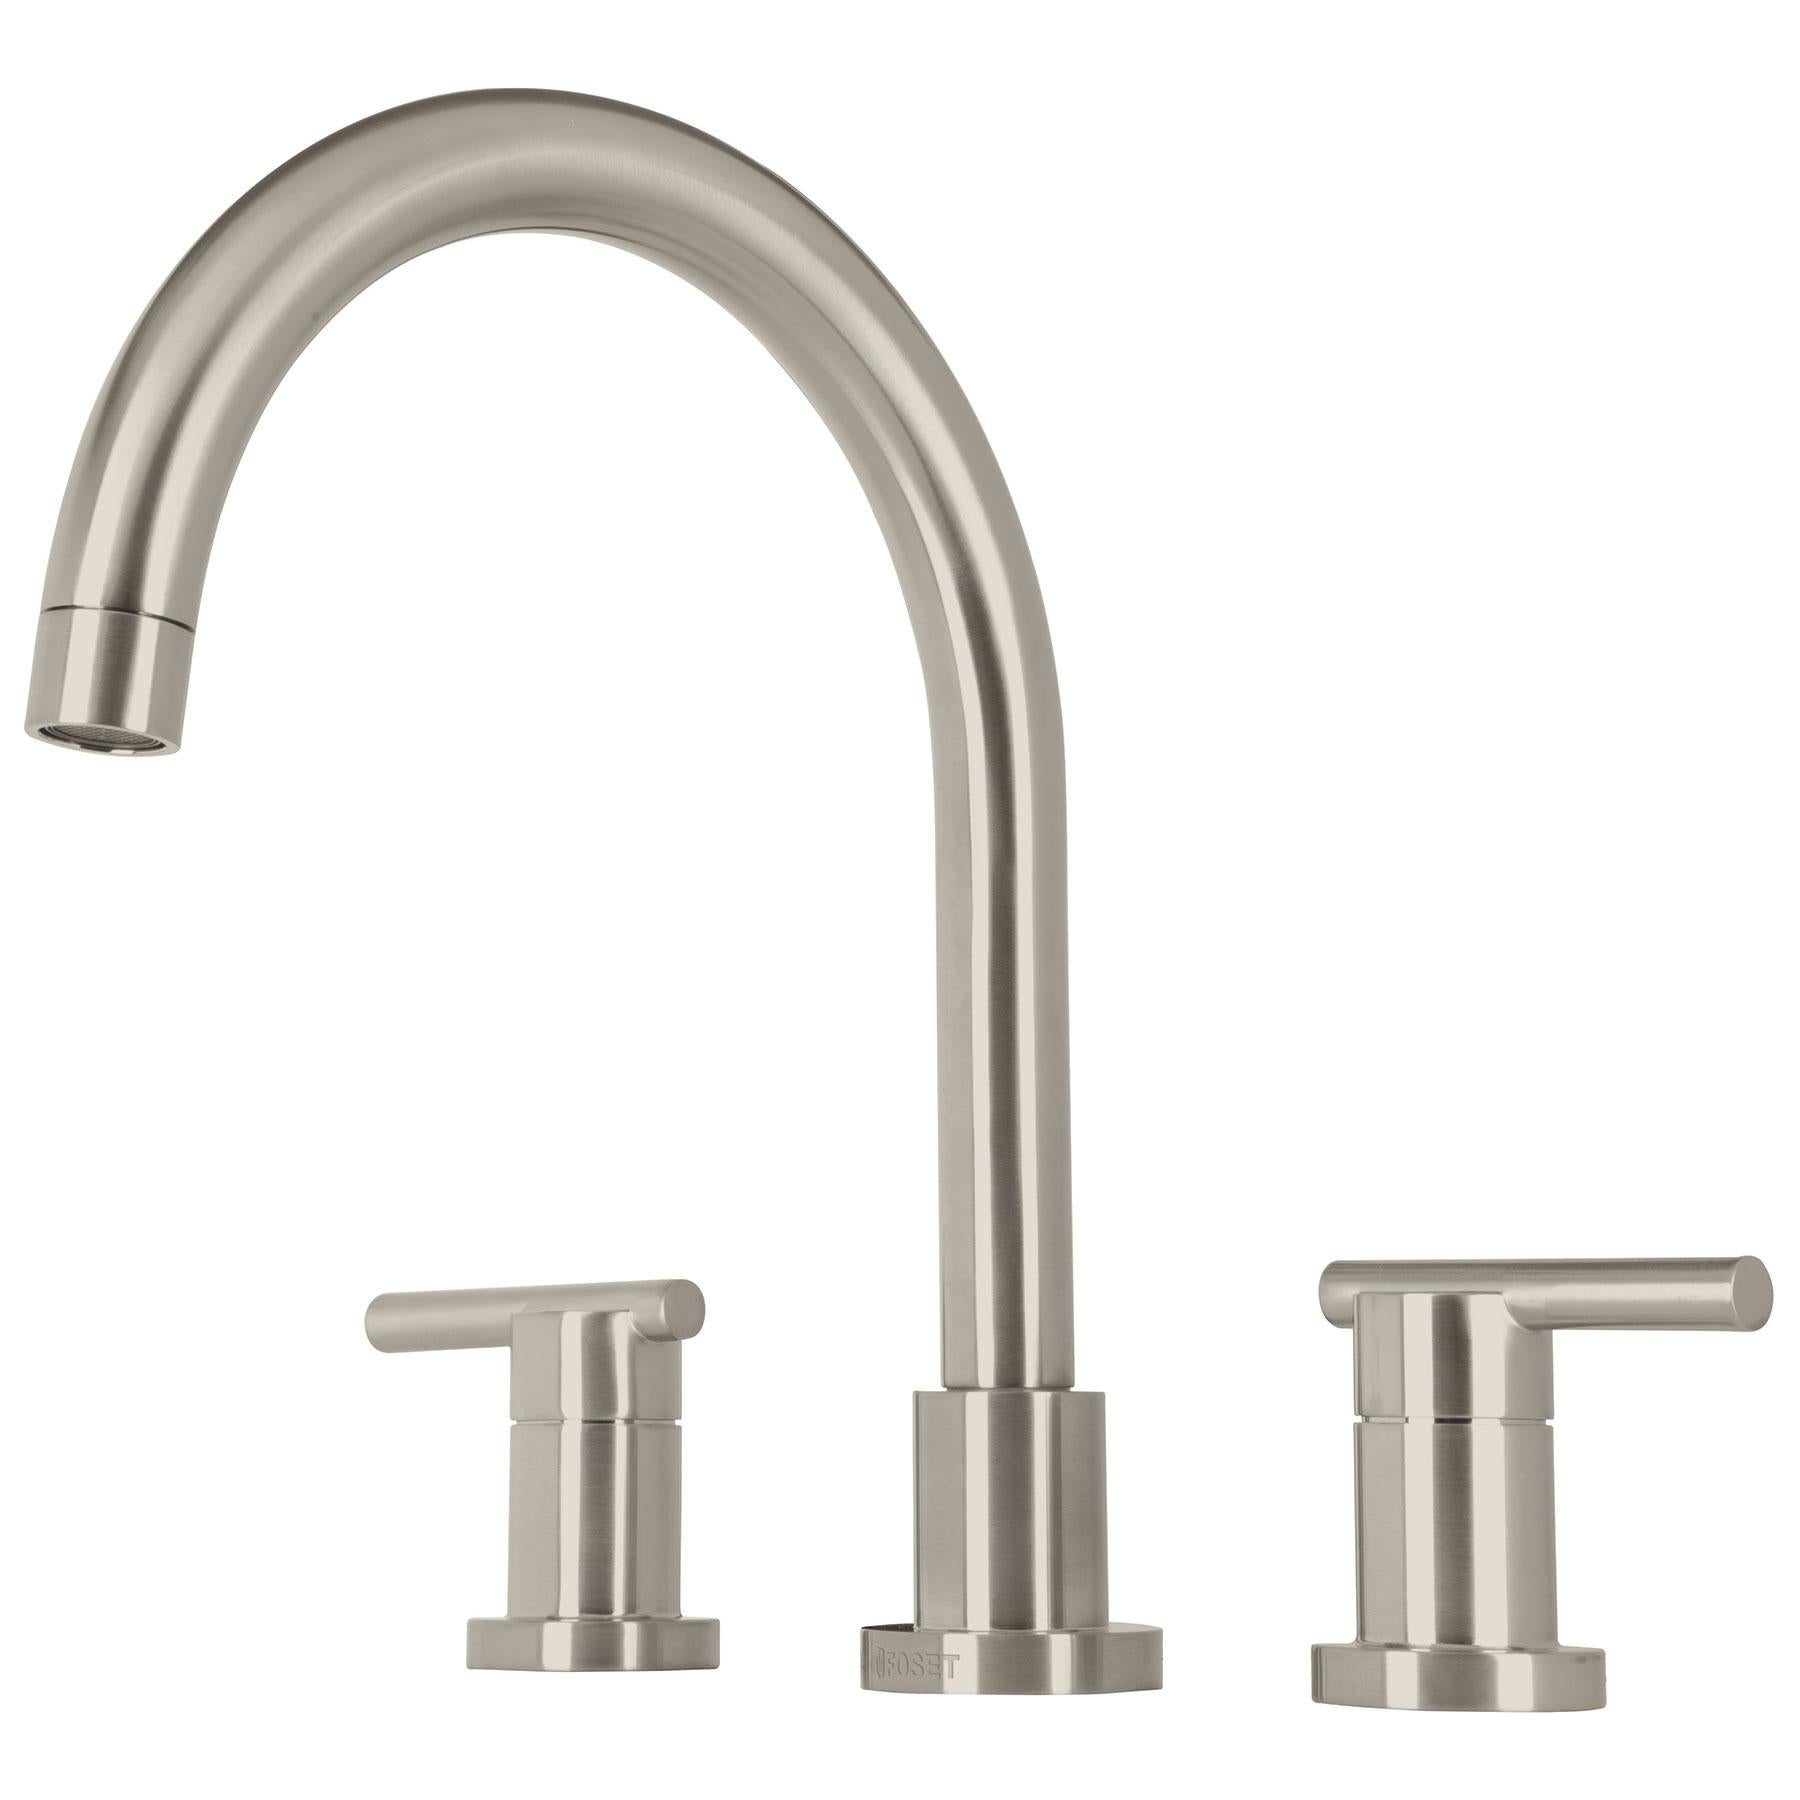 MEZCLADORA FOSET ELEMENT ELF-81N SATIN P/FREGADERO